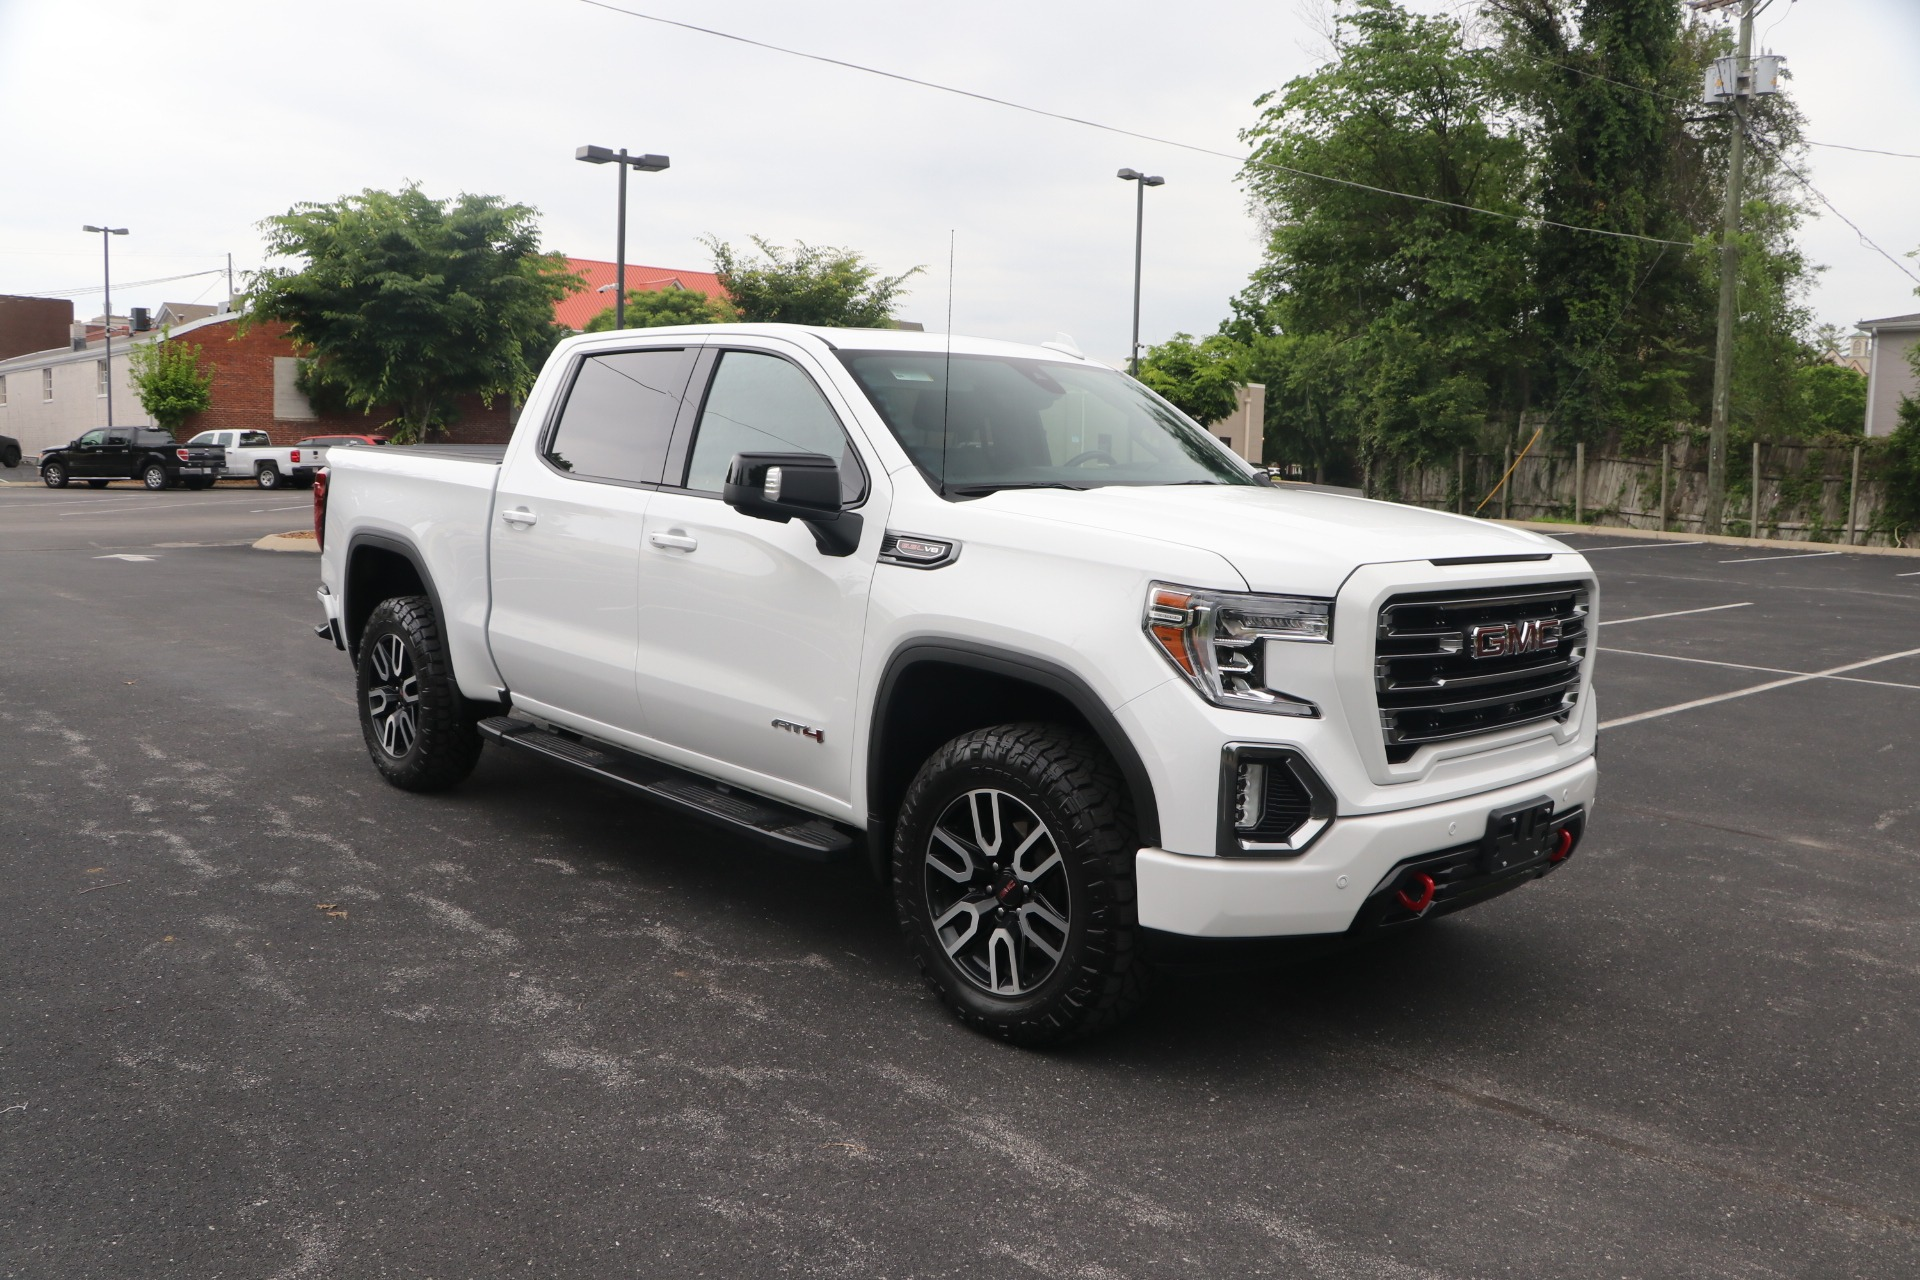 Used 2020 GMC Sierra 1500 SIERRA 1500 AT4 PREMIEUM CREW CAB 4WD W/NAV for sale $65,950 at Auto Collection in Murfreesboro TN 37130 1